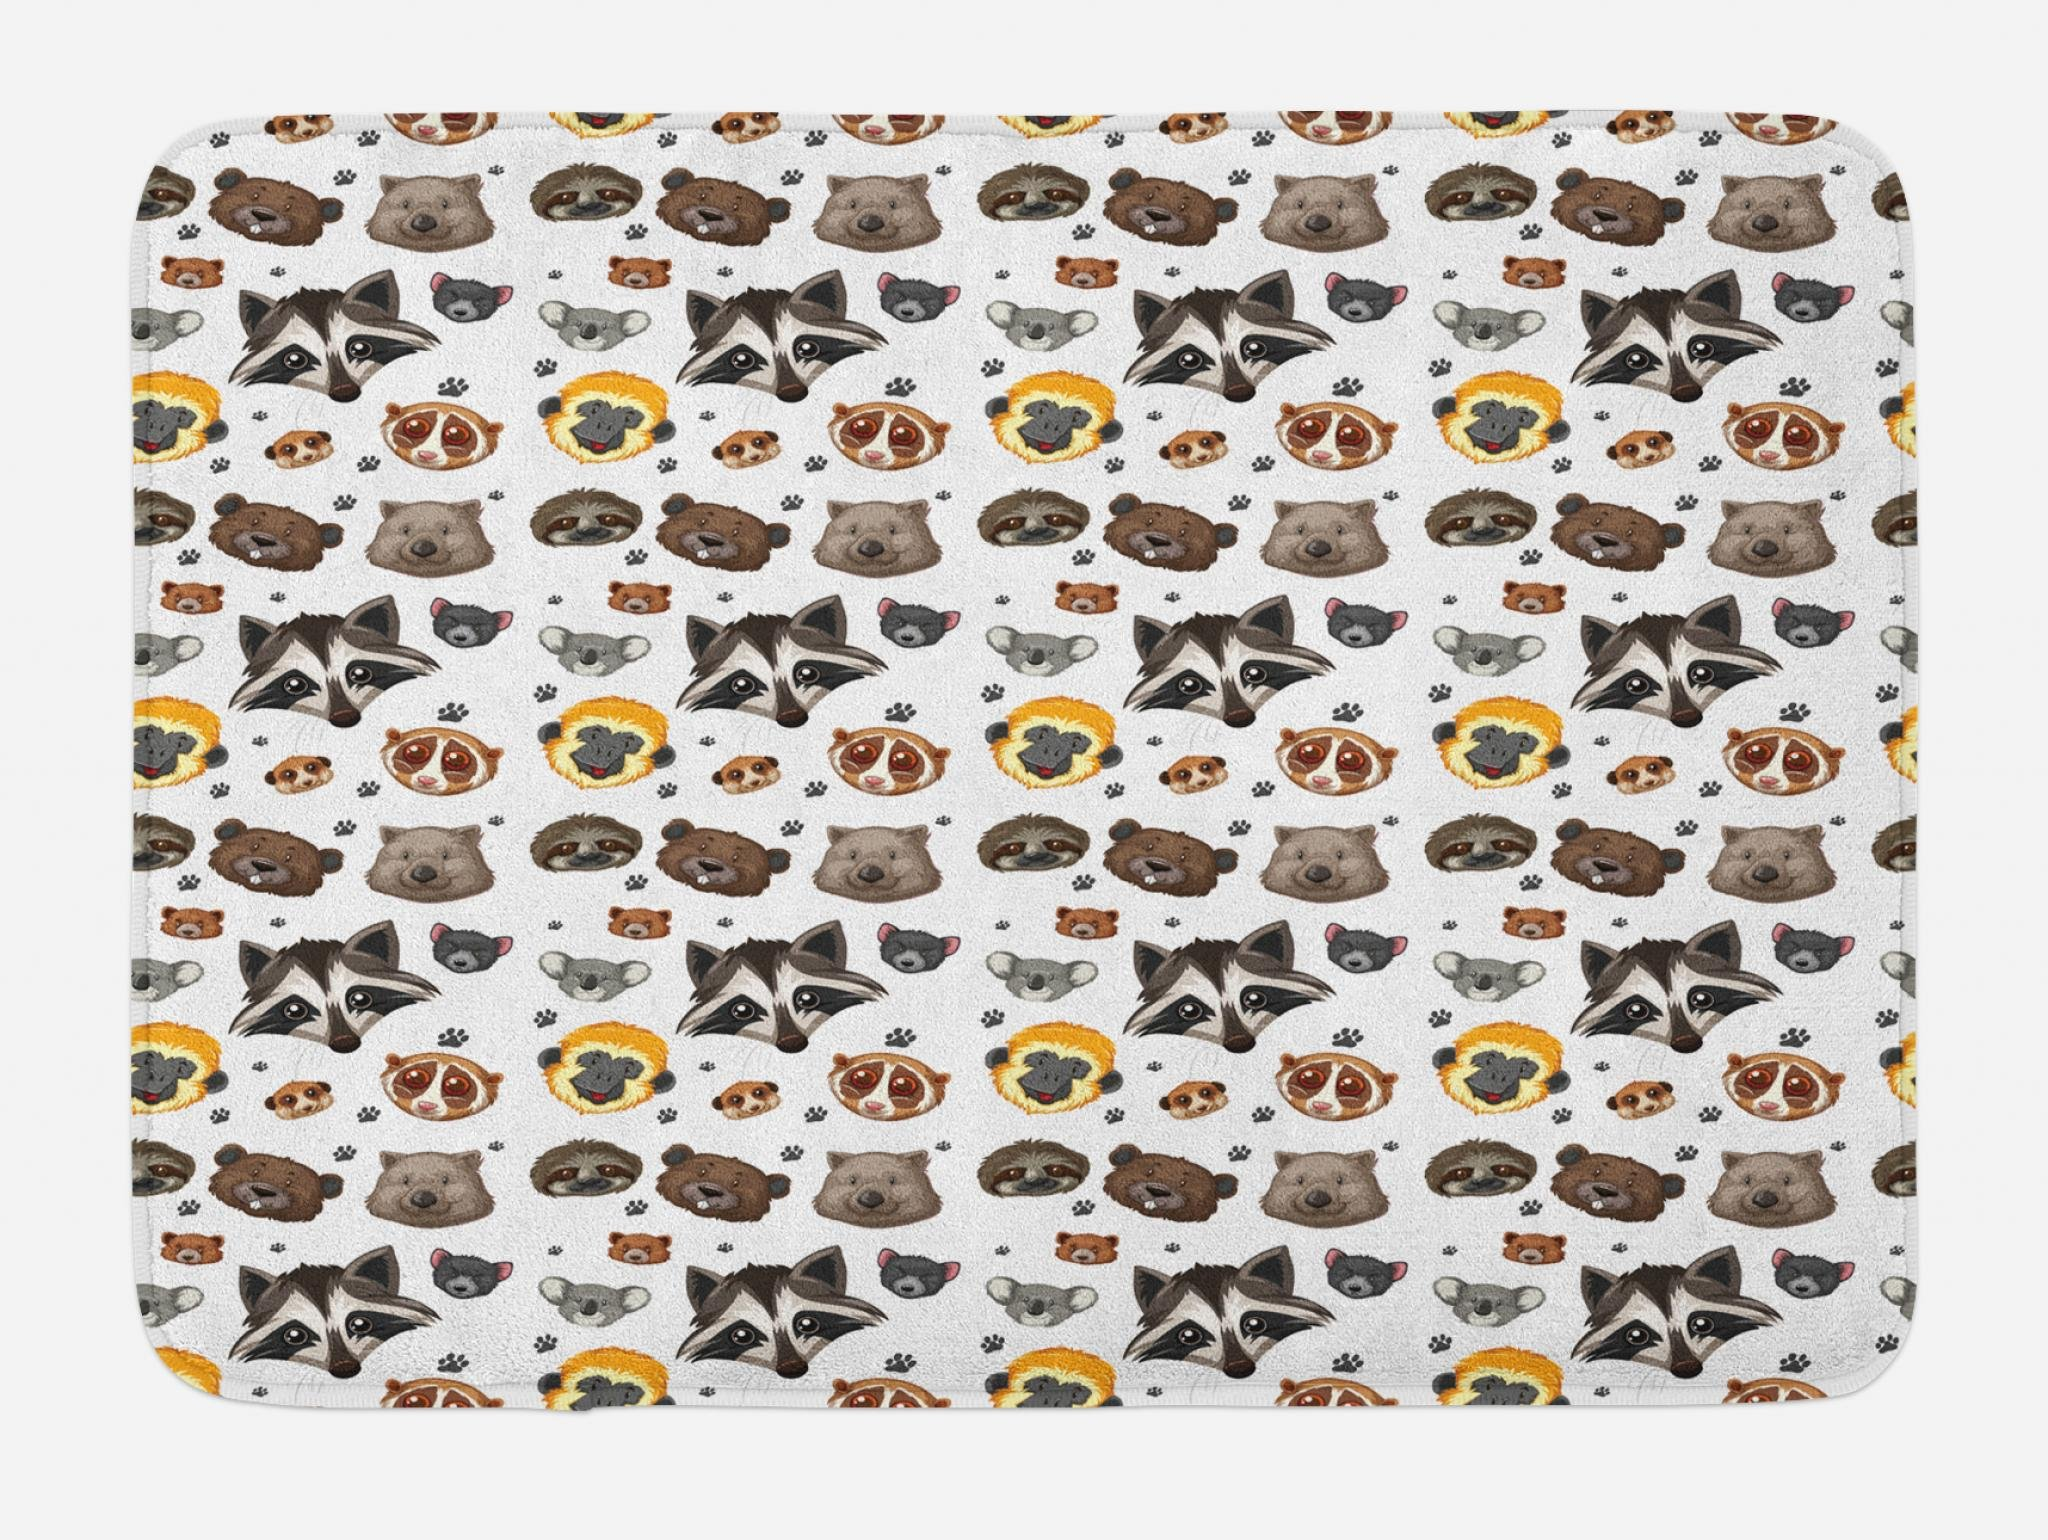 Lunarable Raccoon Bath Mat, Animal Heads Cute Monkey Bear Mouse Hamster Paws Pet Wilderness Exotic Forest Theme, Plush Bathroom Decor Mat with Non Slip Backing, 29.5 W X 17.5 W Inches, Multicolor